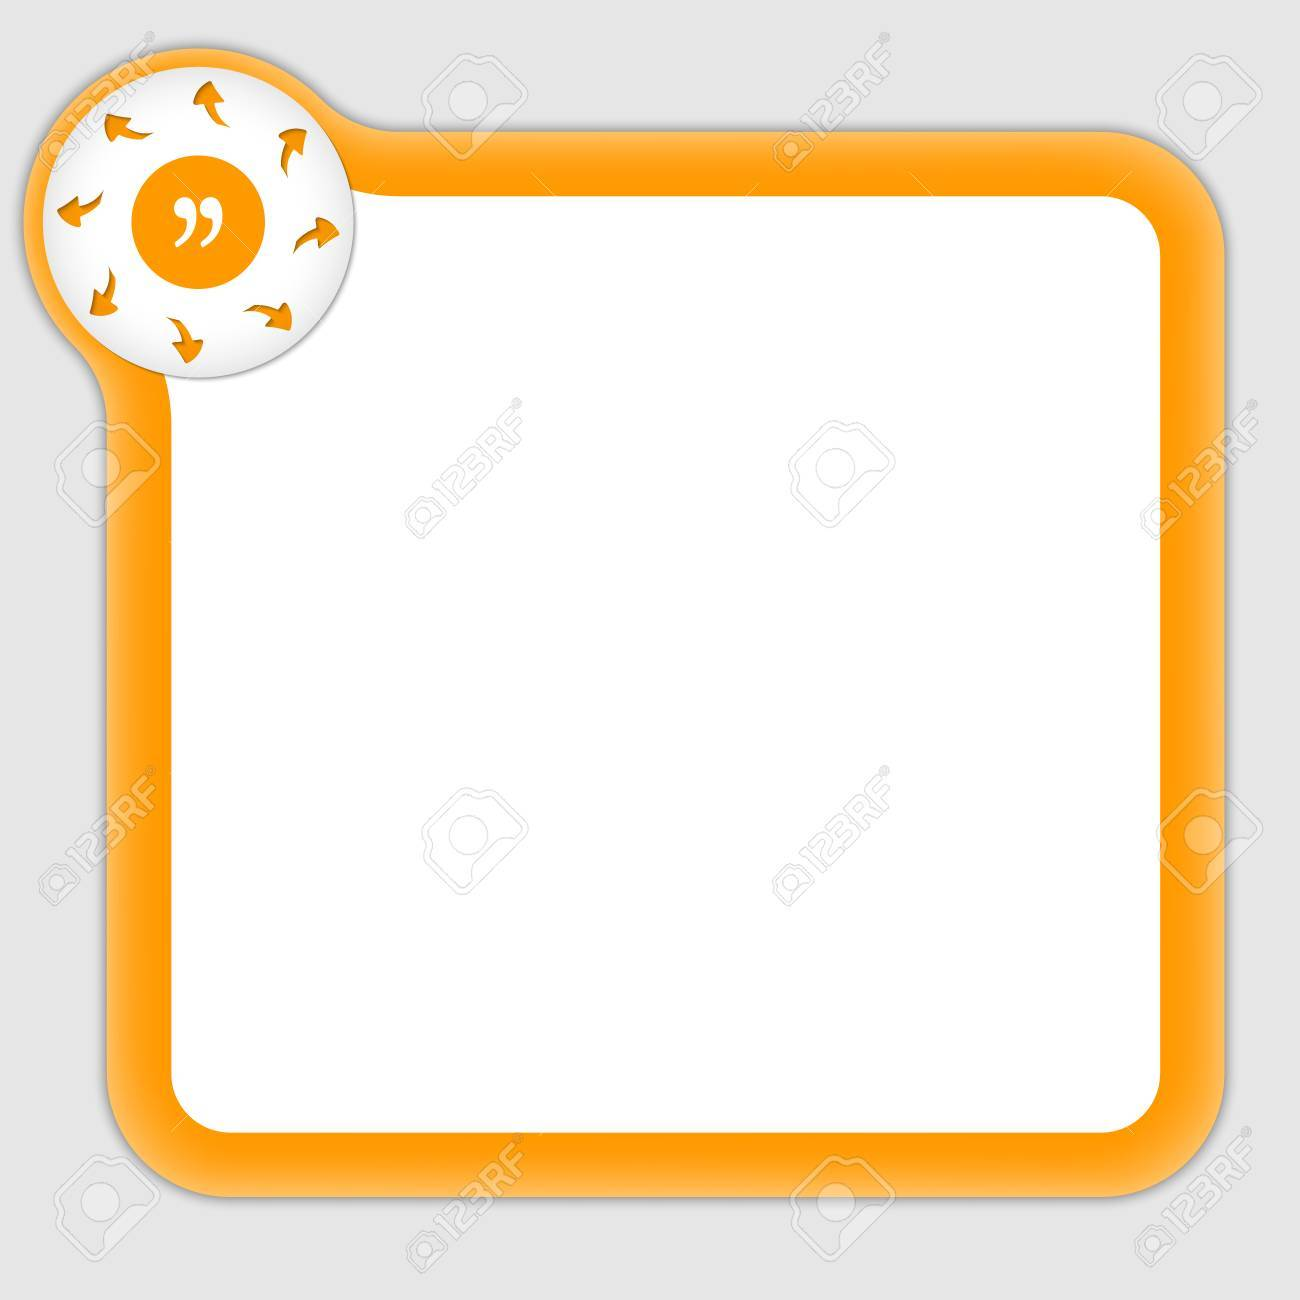 Orange Frame For Entering Any Text With Arrow And Quotation Mark ...